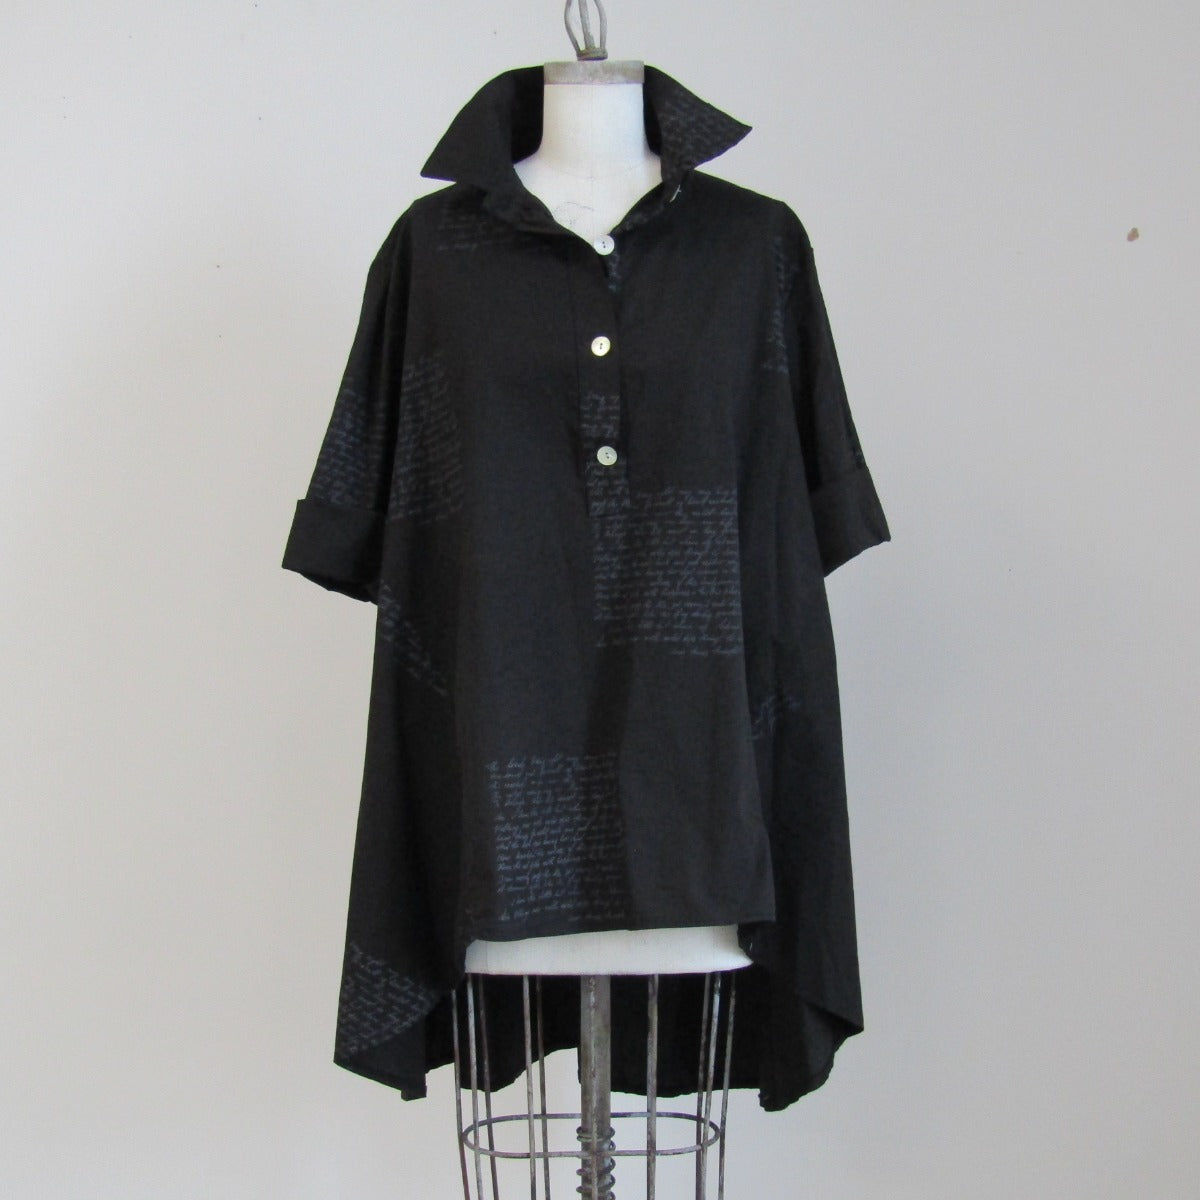 Little black Trench Shirt - Heart PFTP